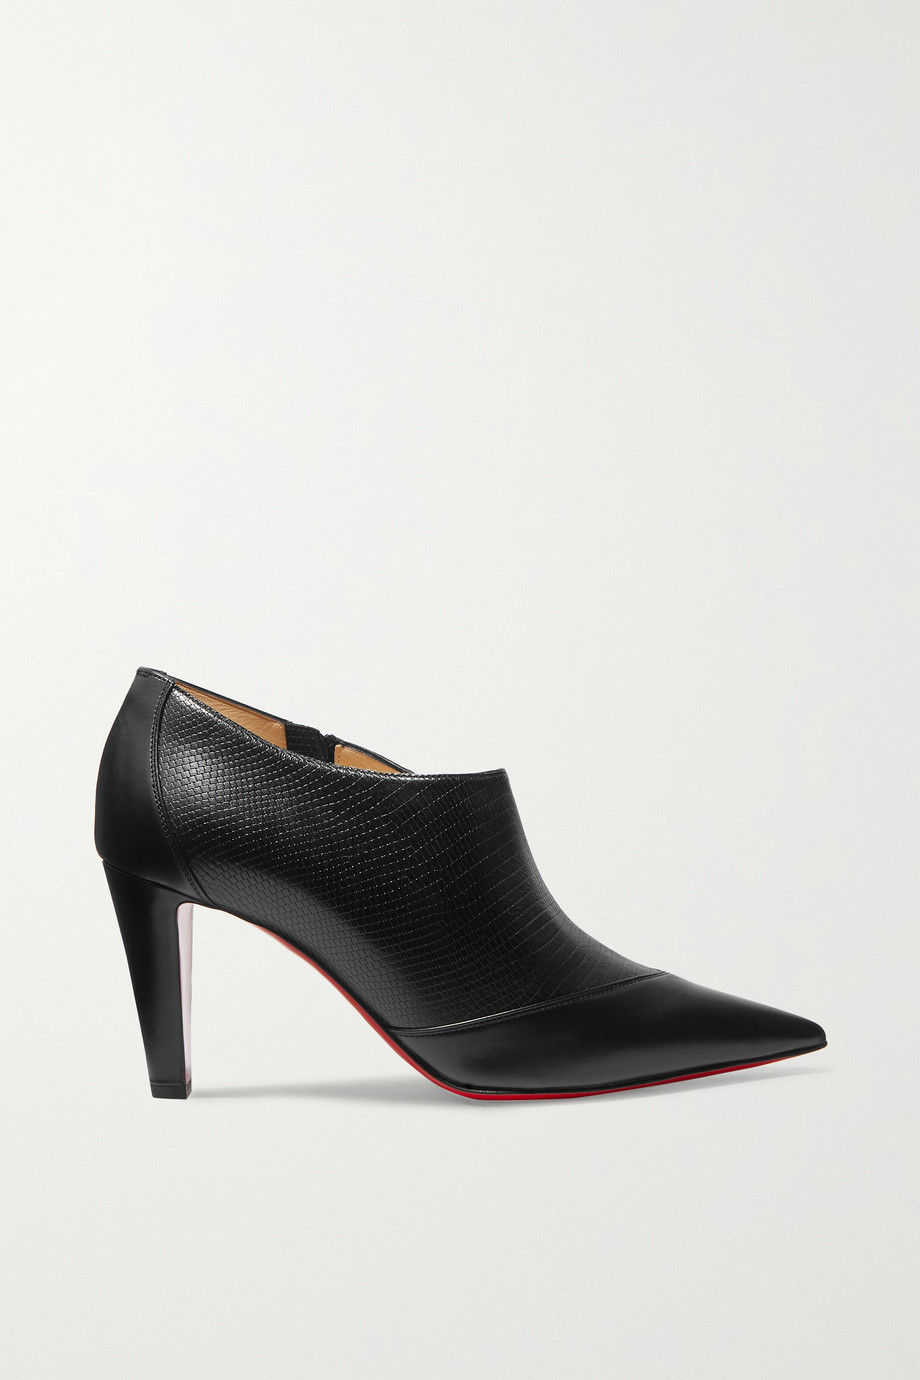 Christian Louboutin 80 Paneled smooth and lizard-effect leather ankle boots